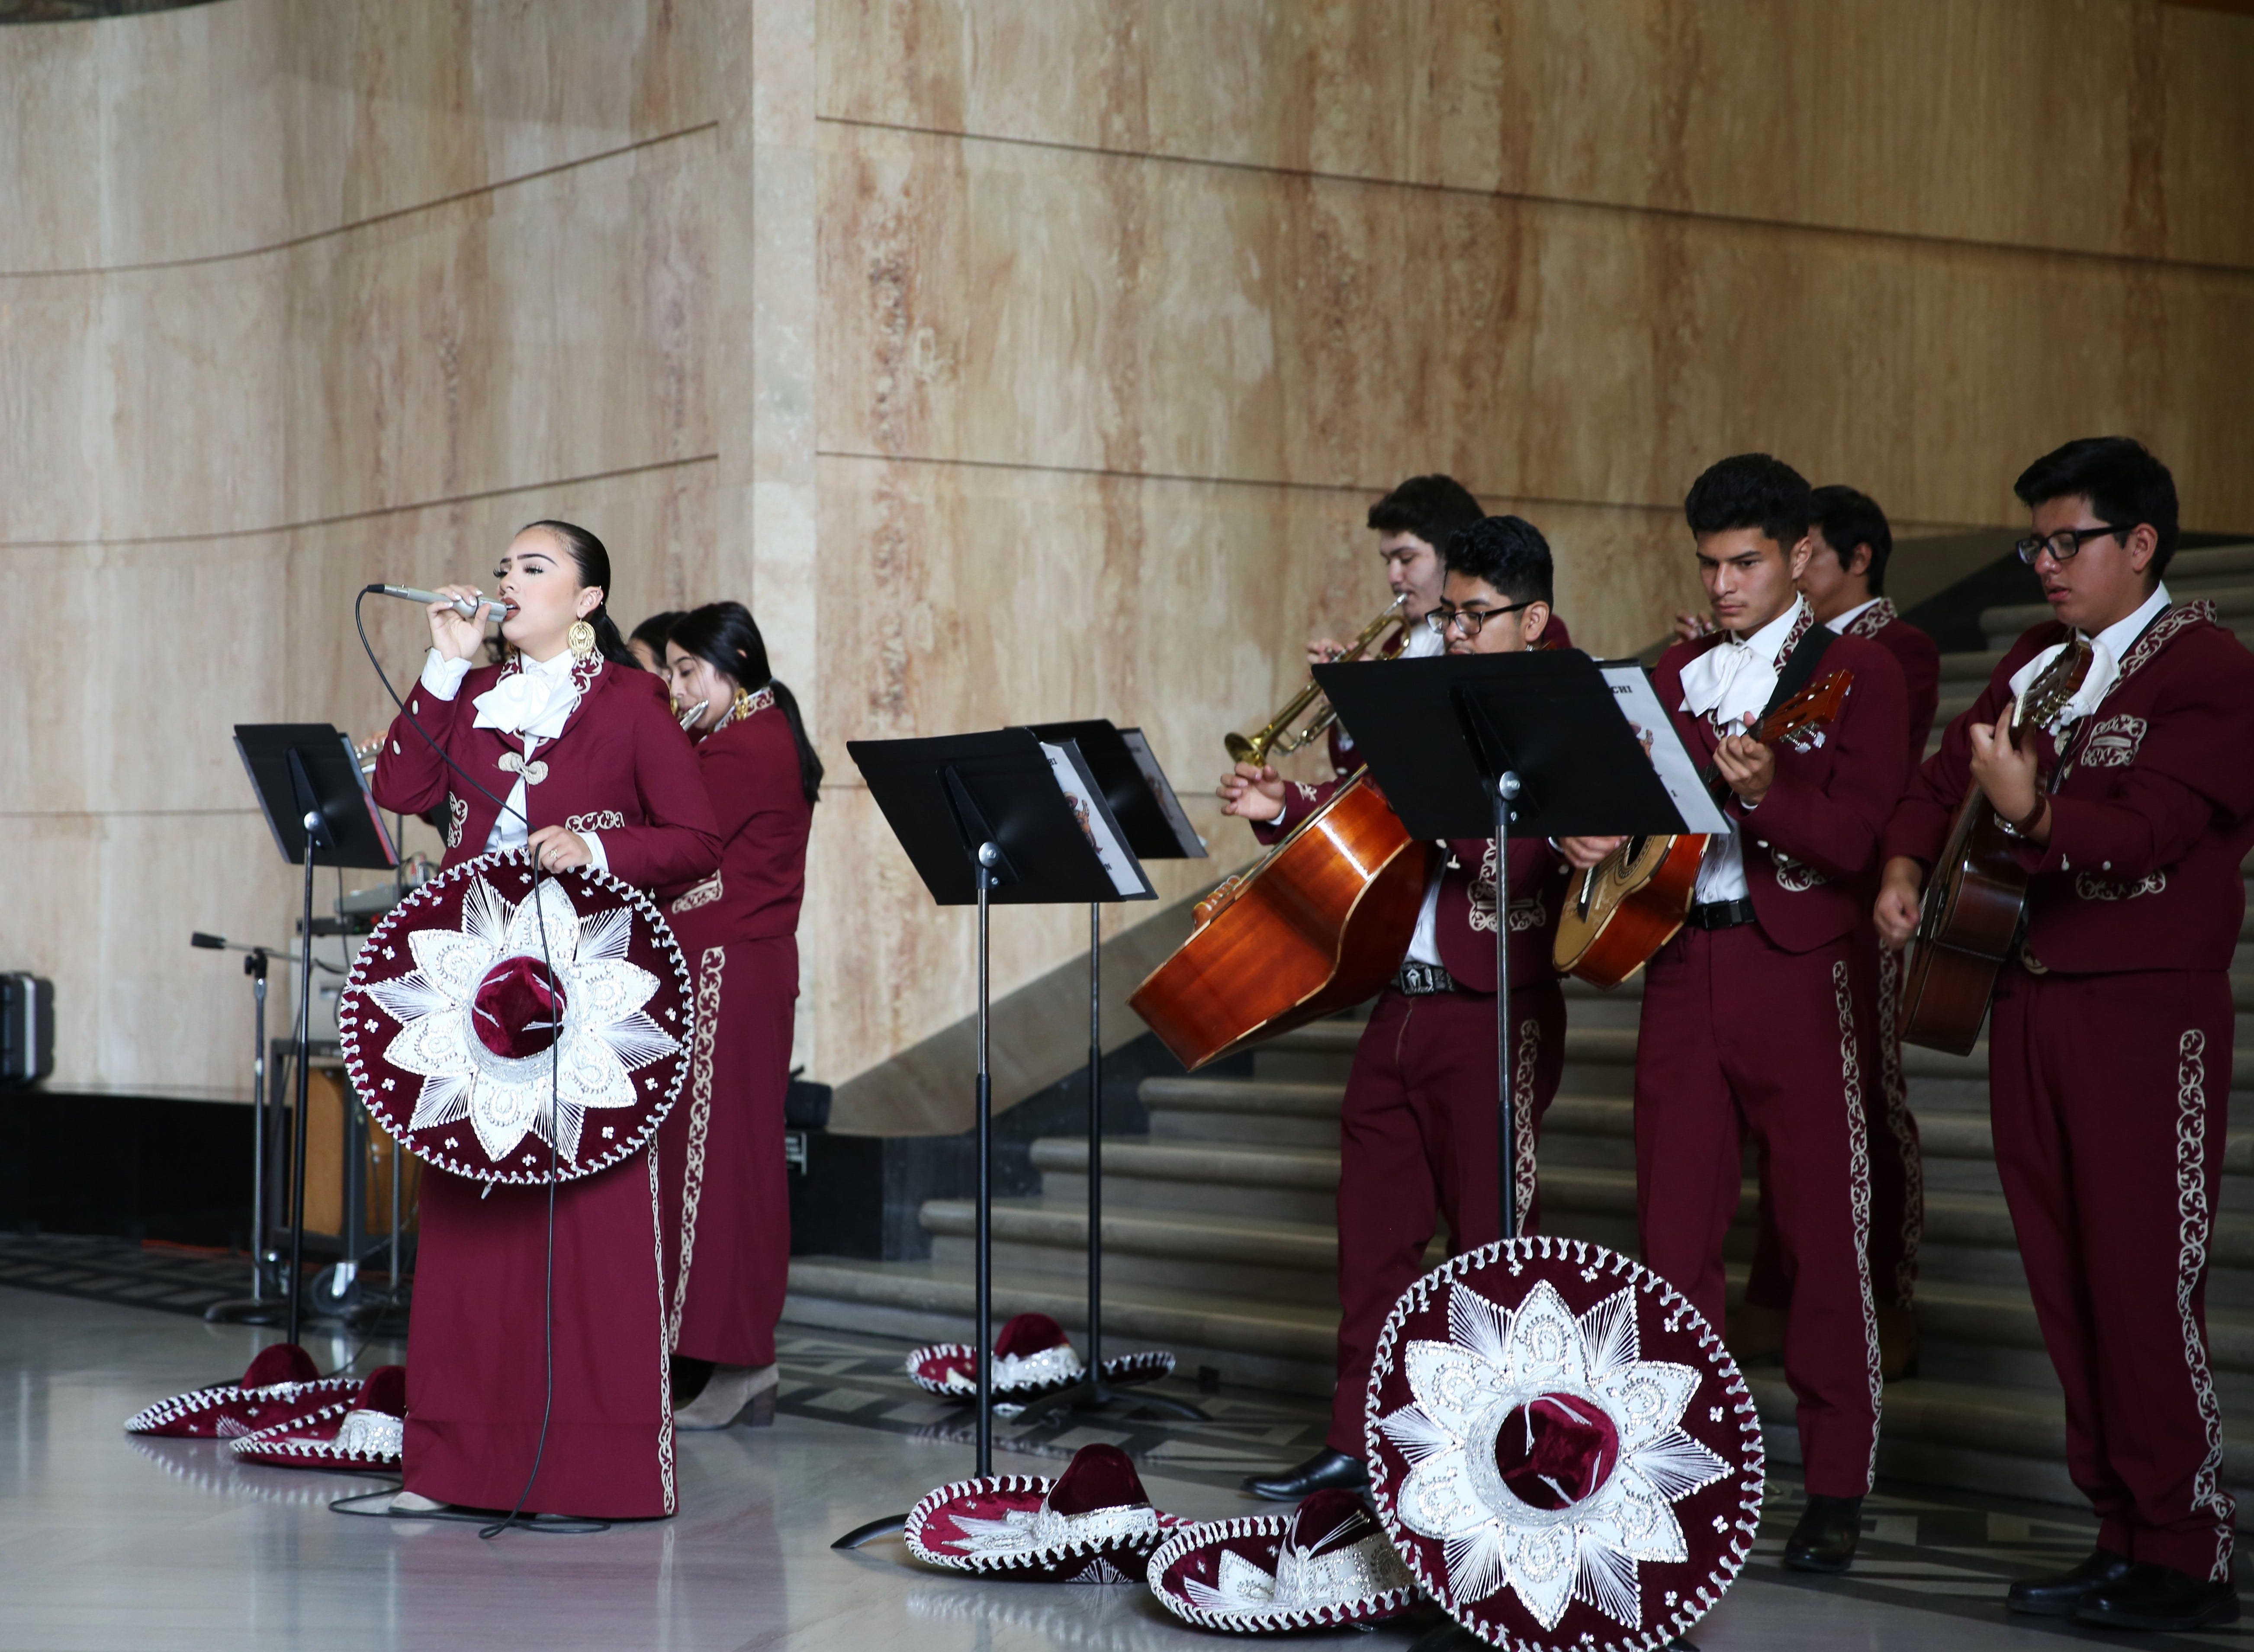 PHOTOS: Hispanic Heritage Day at the Oregon State Capitol